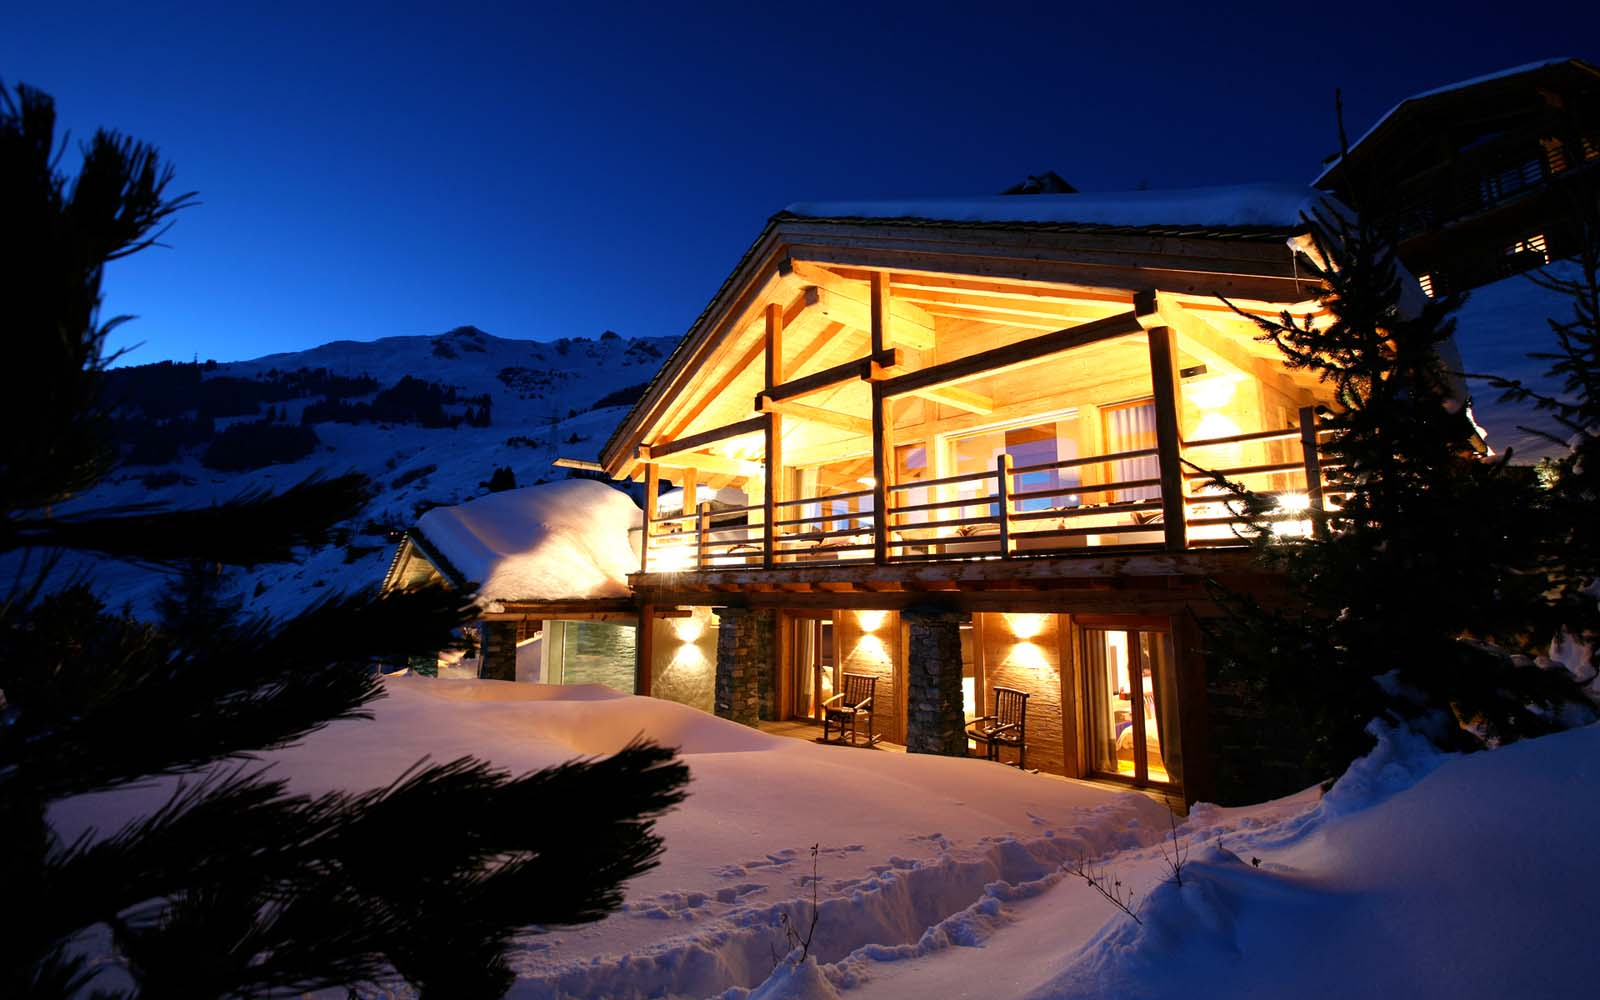 Chalet spa verbier in verbier by skiboutique for Disegni di chalet svizzeri